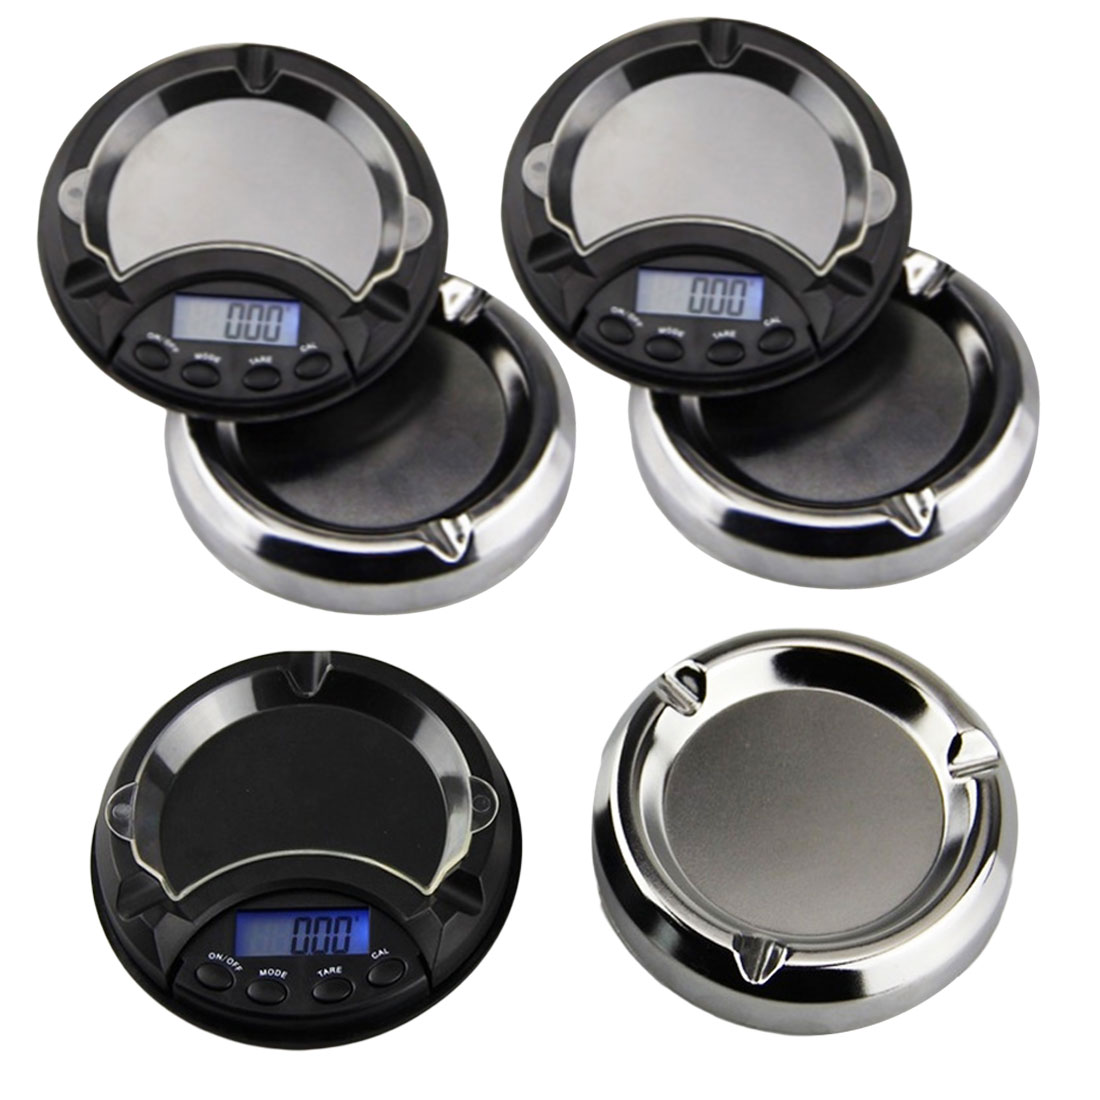 Portable Ashtray <font><b>Digital</b></font> <font><b>Scale</b></font> <font><b>0.01g</b></font> Electronic <font><b>Pocket</b></font> <font><b>Scales</b></font> for Gold Silver Jewelry <font><b>Scale</b></font> High Precision Blue Backlight image